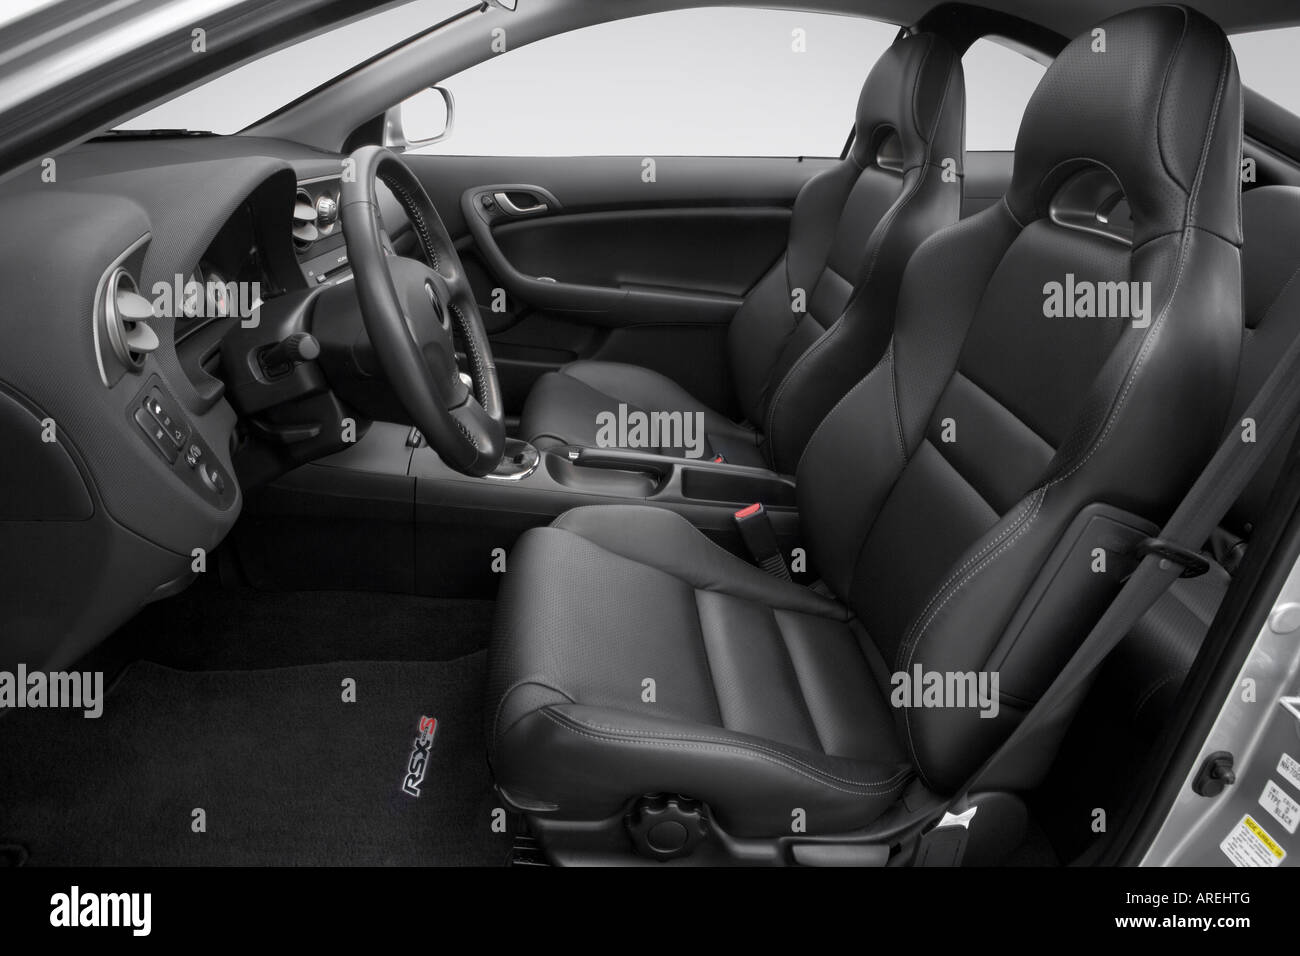 2006 Acura RSX Type-S in Silver - Front seats Stock Photo: 16030959